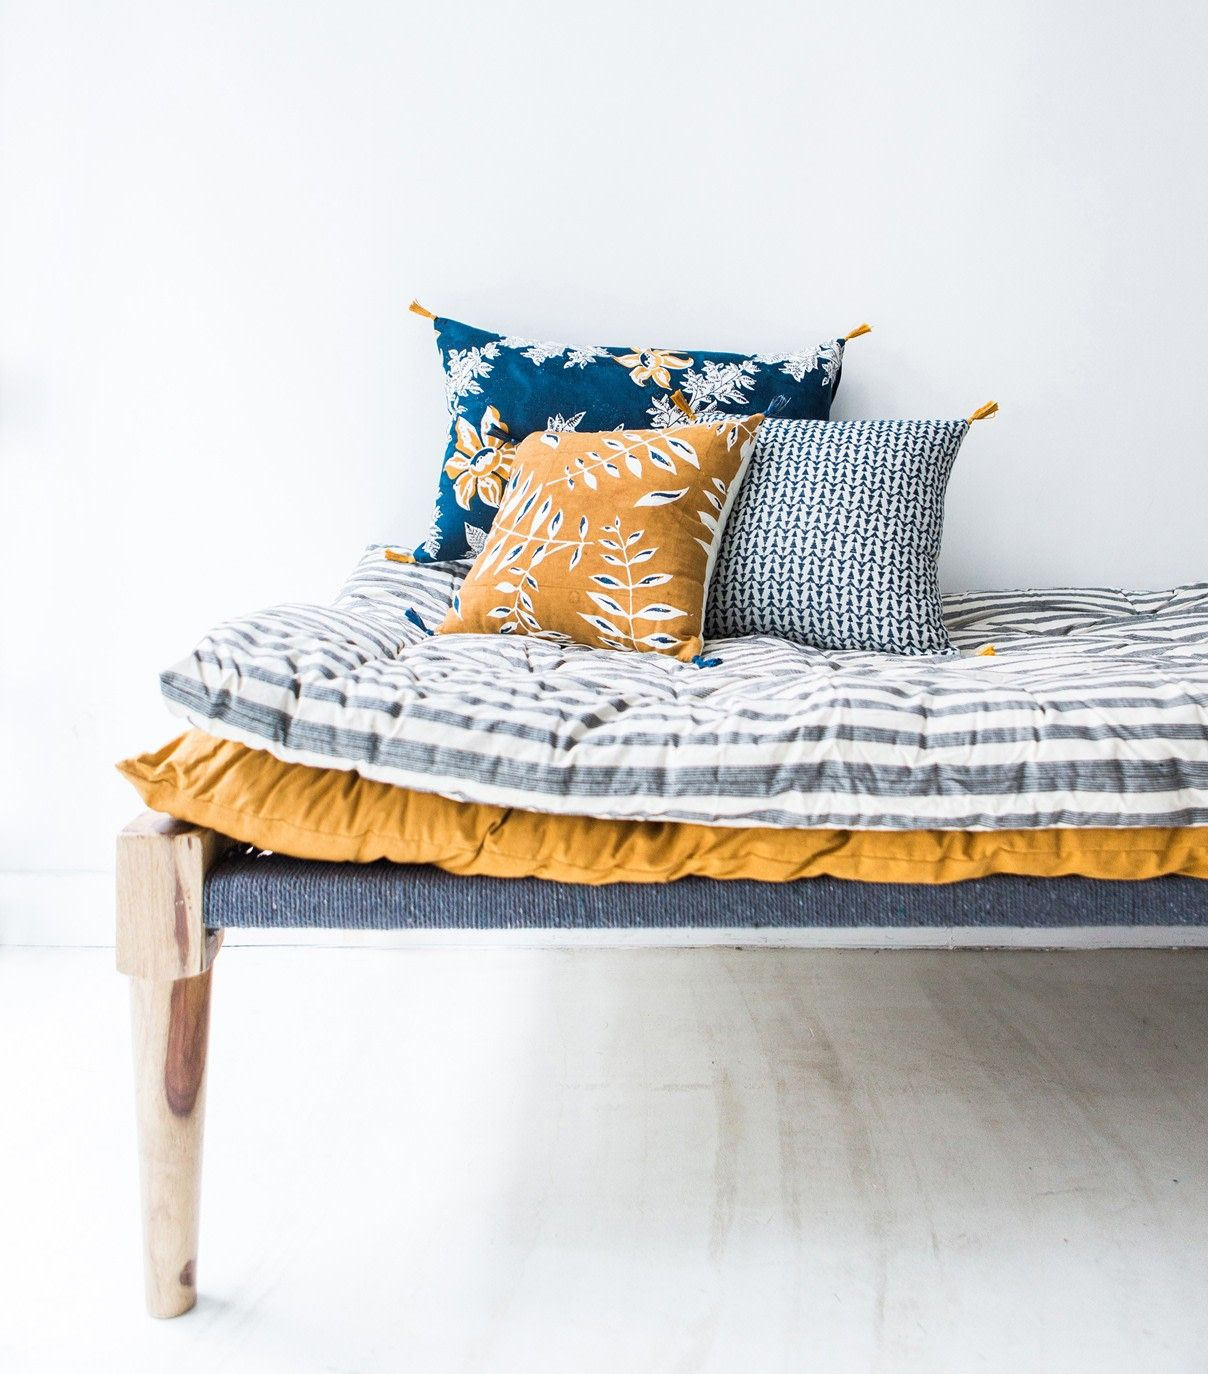 French Vintage Home Goods Shop – Super Marché | Home Goods For French Seamed Sectional Sofas Oblong Mustard (View 5 of 15)